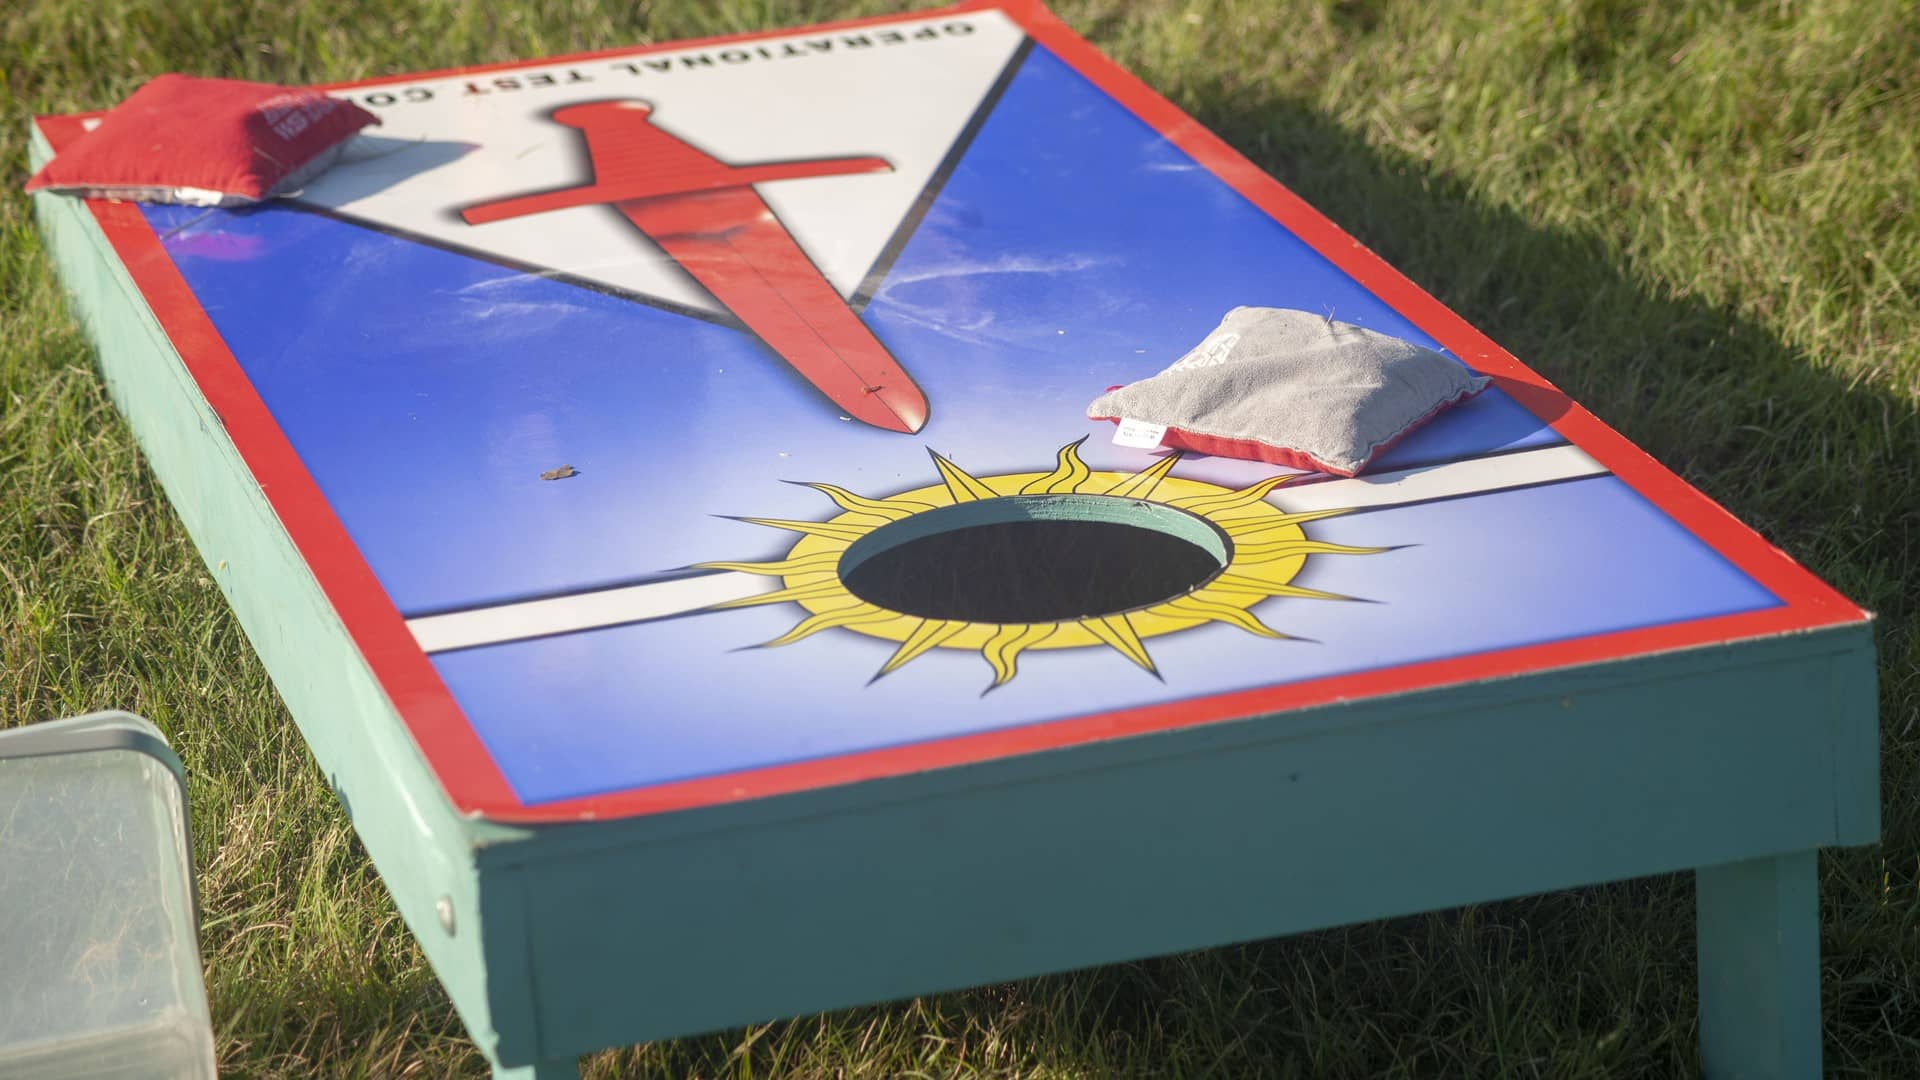 A Baggo game with an Operational Testing Command logo imprinted on it